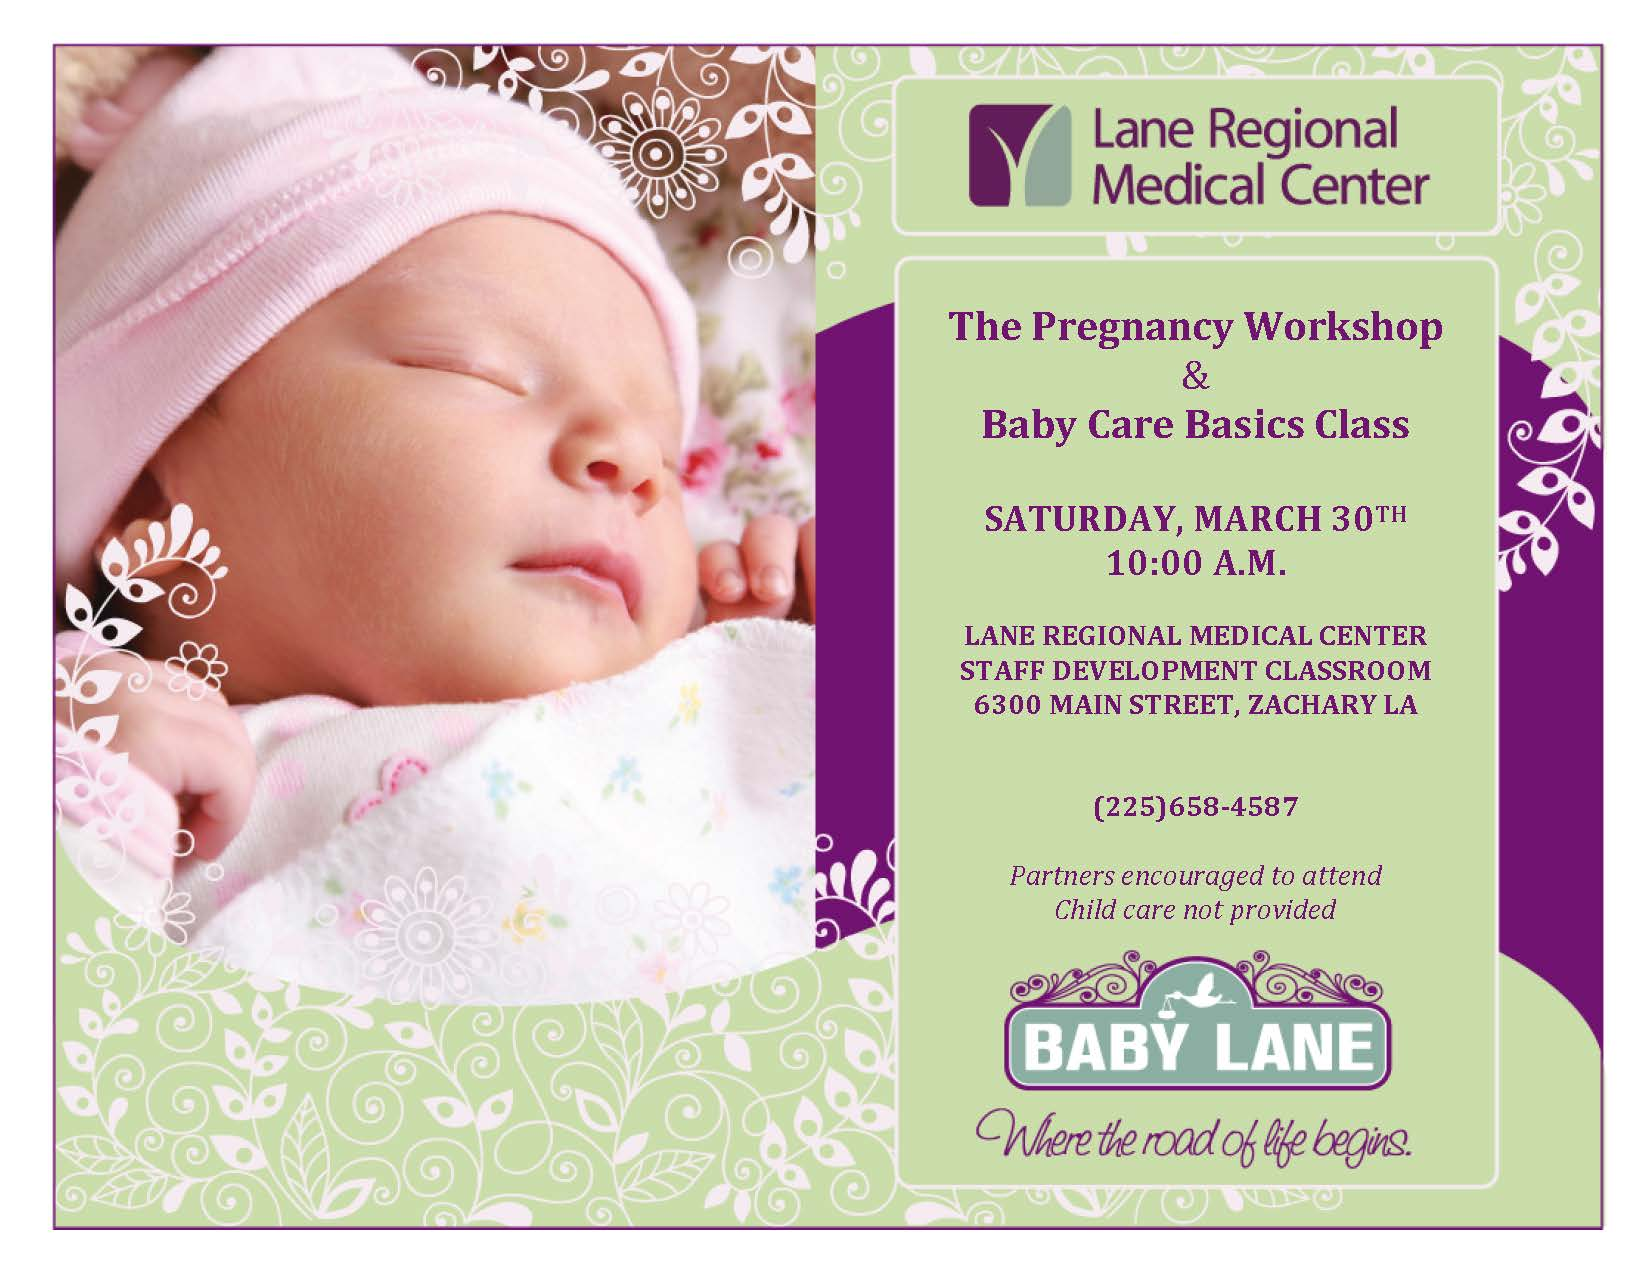 FREE Prenatal & Newborn Baby Care Class March 30th